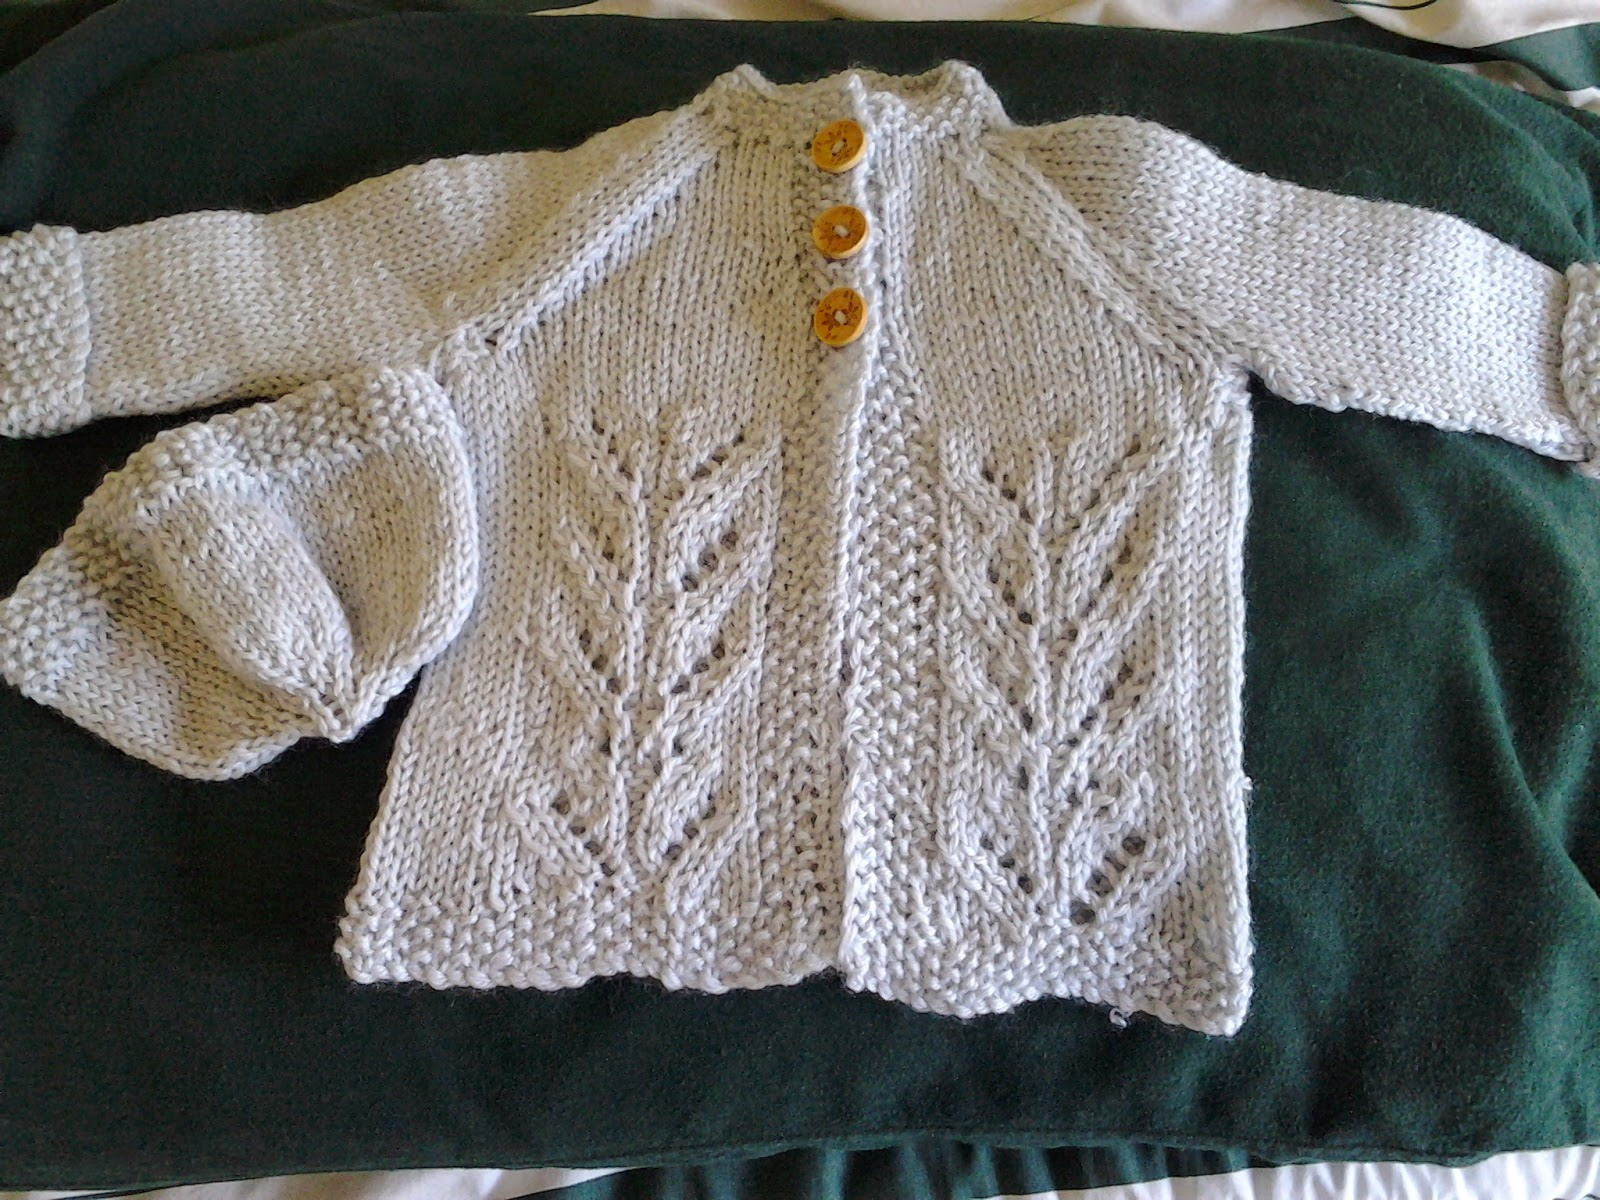 222a86873 alankarshilpa  A Free Knitting pattern - Baby Cardigan Raglan from ...